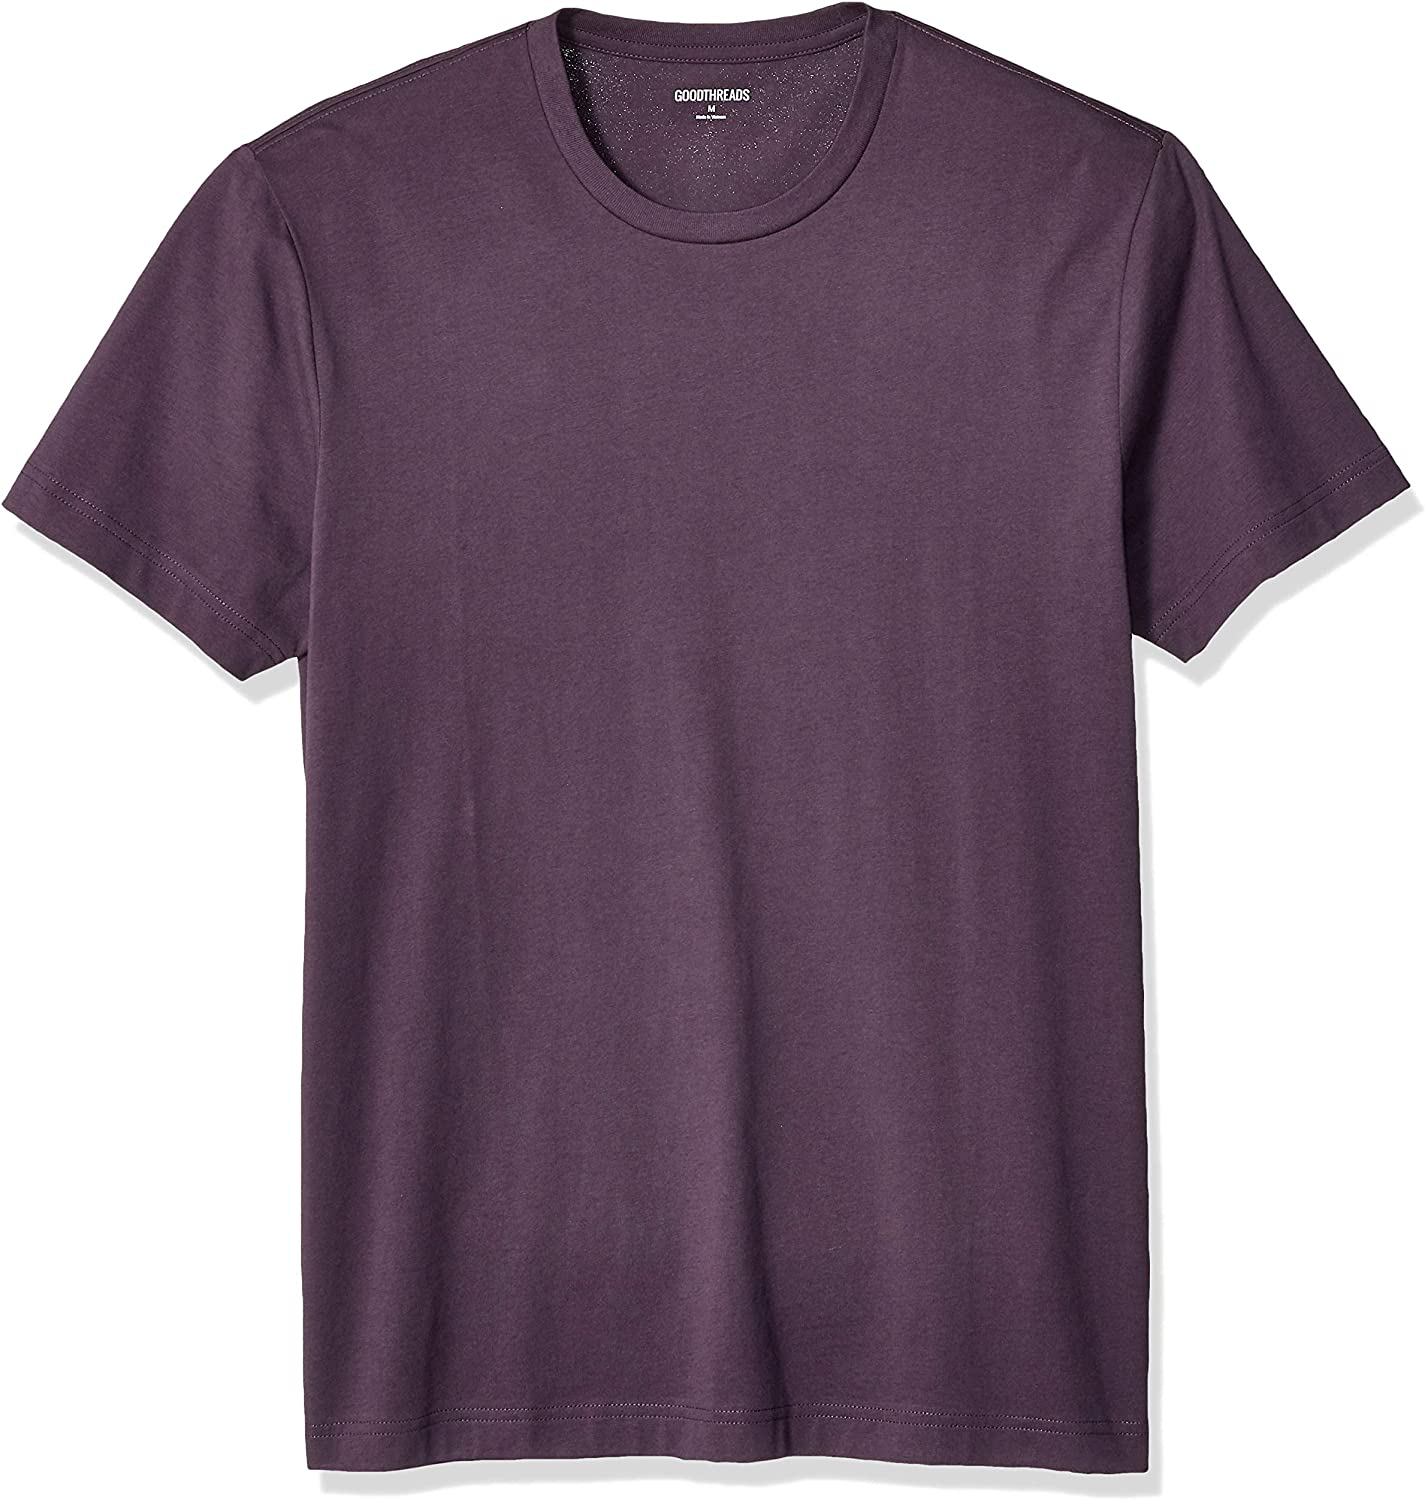 Over Under Clothing Not Made in China Short Sleeve Pocket T-Shirt